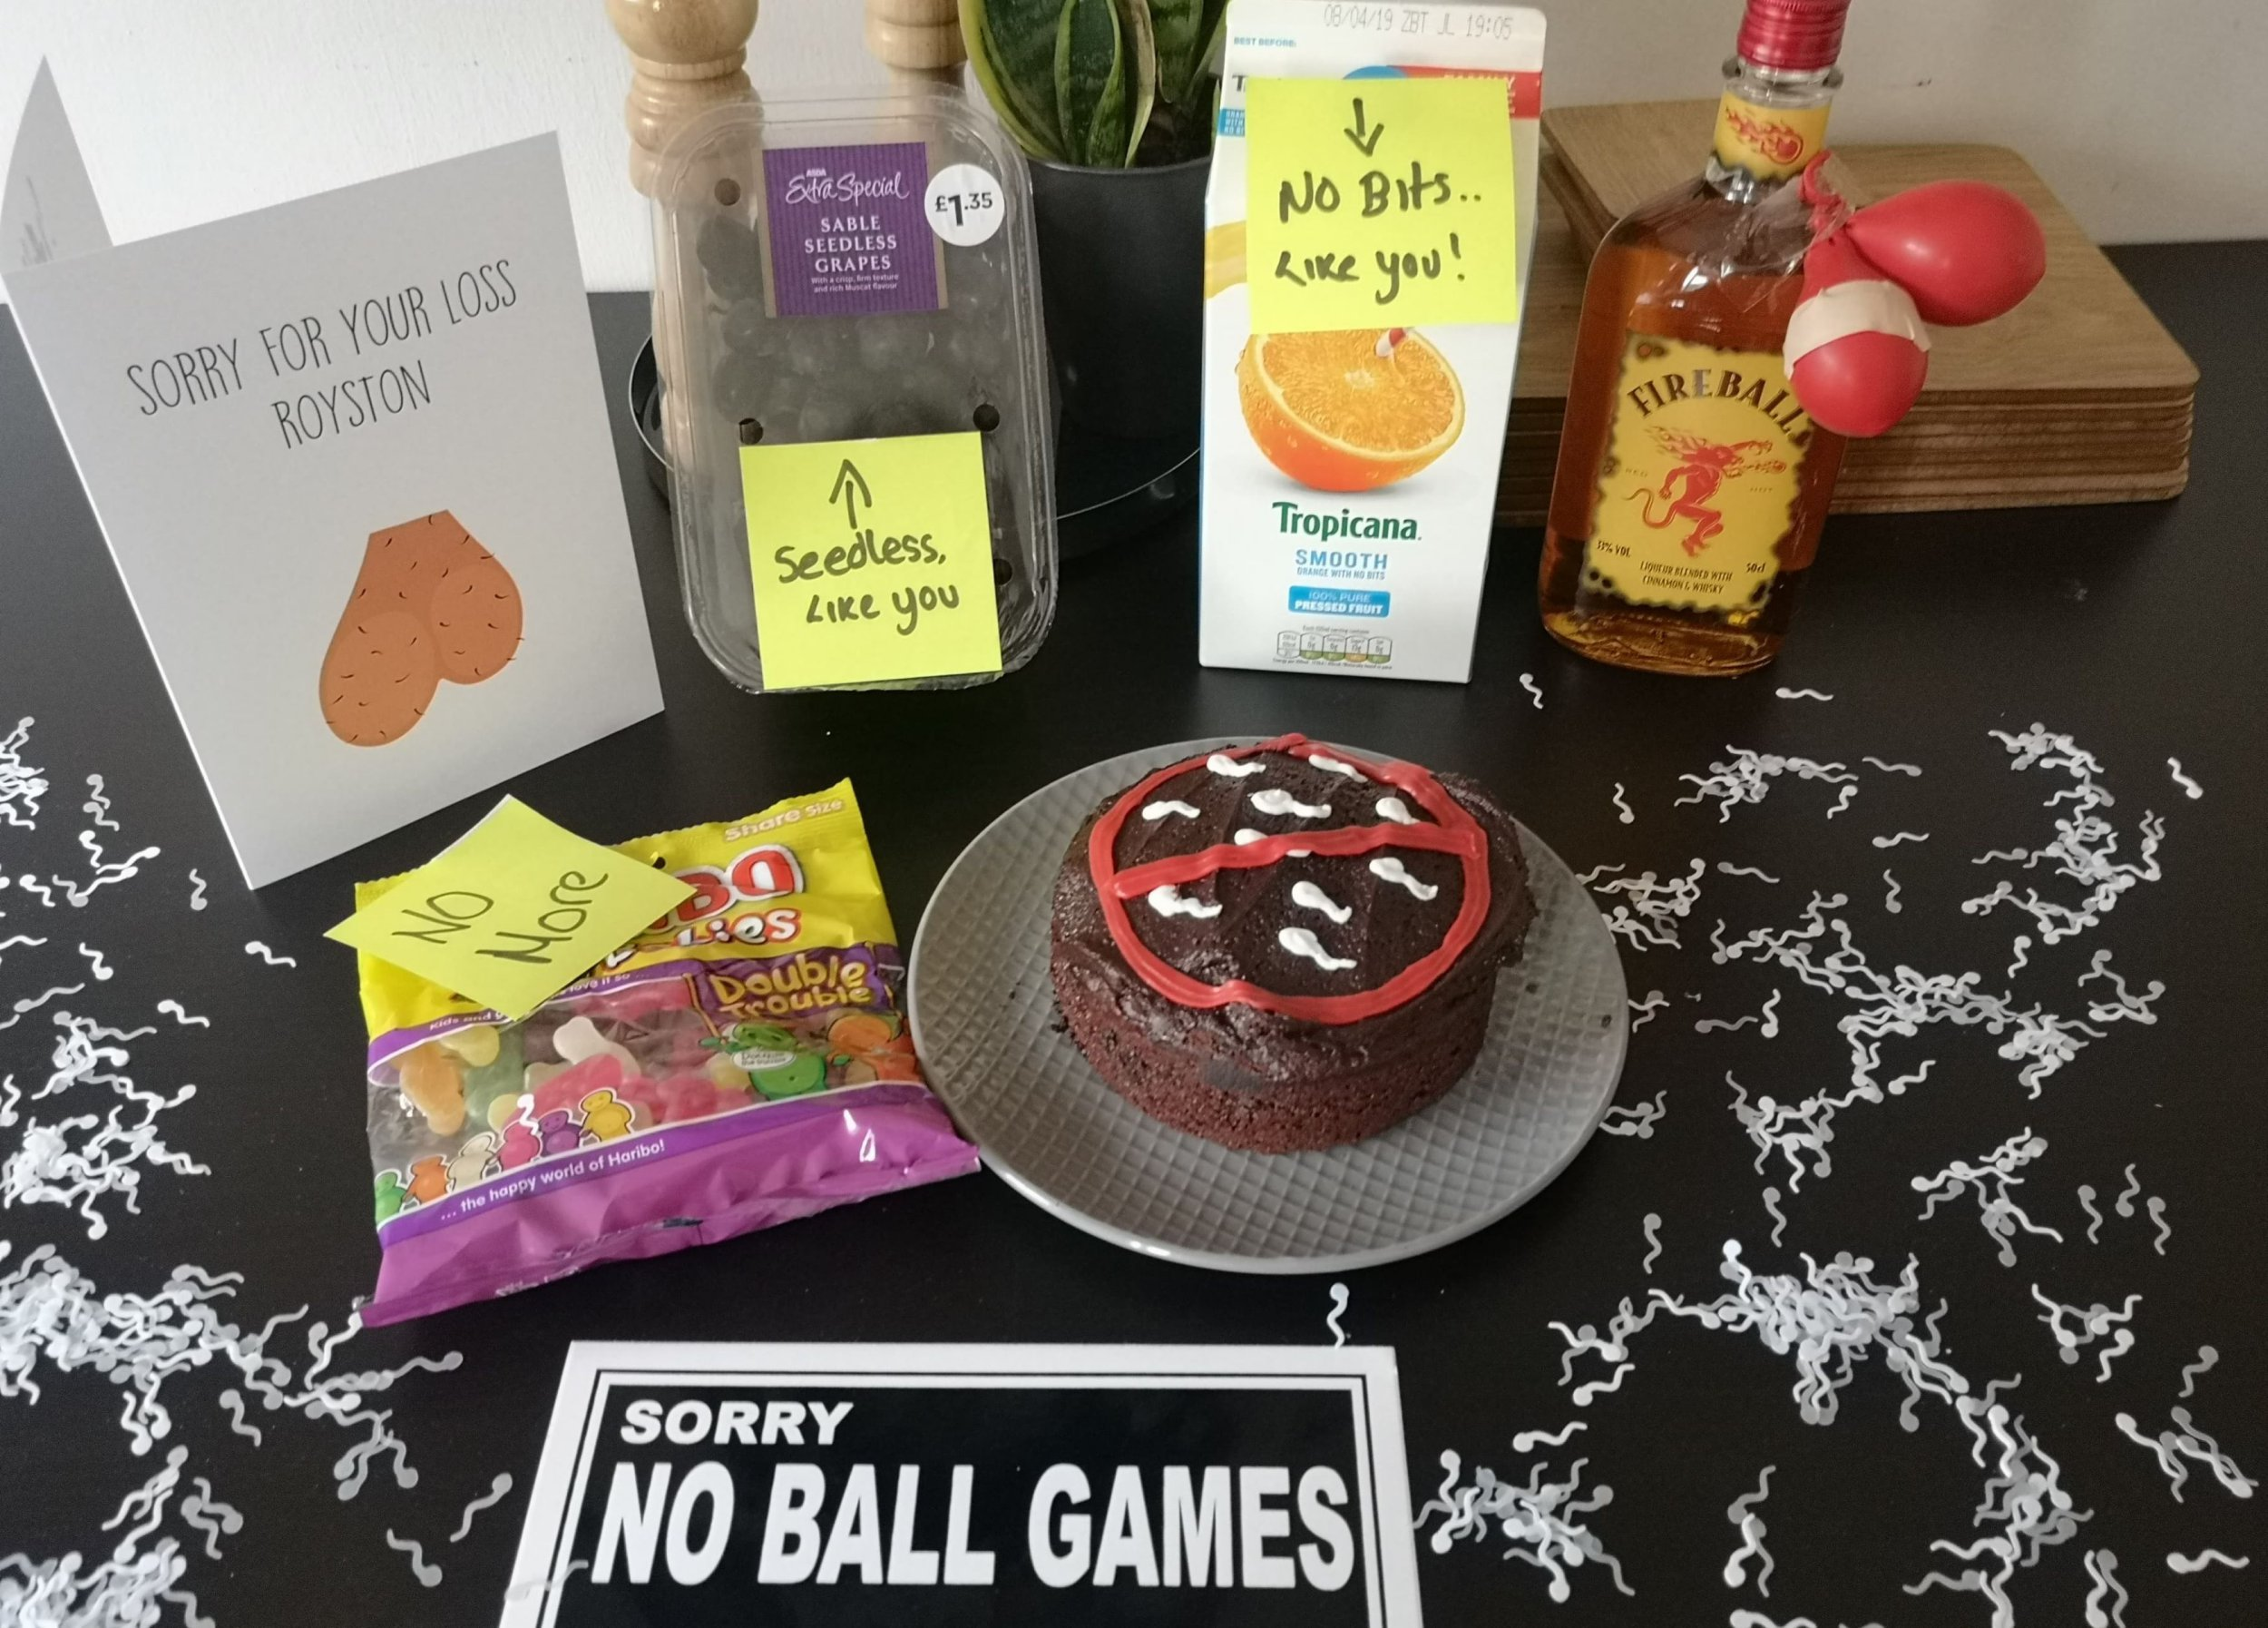 PIC FROM Kennedy News and Media (PICTURED: SOME OF THE VASECTOMY-THEMED SPREAD CHERISH ALLEN, 27, PUT ON FOR PARTNER ROYSTON SMITH, 36, AFTER HIS OP) A mum-of-three celebrated her partner???s decision to have the 'snip' by throwing a vasectomy party - complete with 'sperm' cake and meatballs while his kids wore 'swim team' t-shirts. Cherish Allen bid ???balls voyage??? to Royston Smith's reproductive abilities with a ???swimmers-themed??? bash featuring a home-made cake with sperm icing, seedless grapes and ???no bits??? orange juice. The full-time mum threw the party on Friday in recognition of factory worker Royston???s decision to ???take one for the team??? after ???completing??? their family and having three children together.